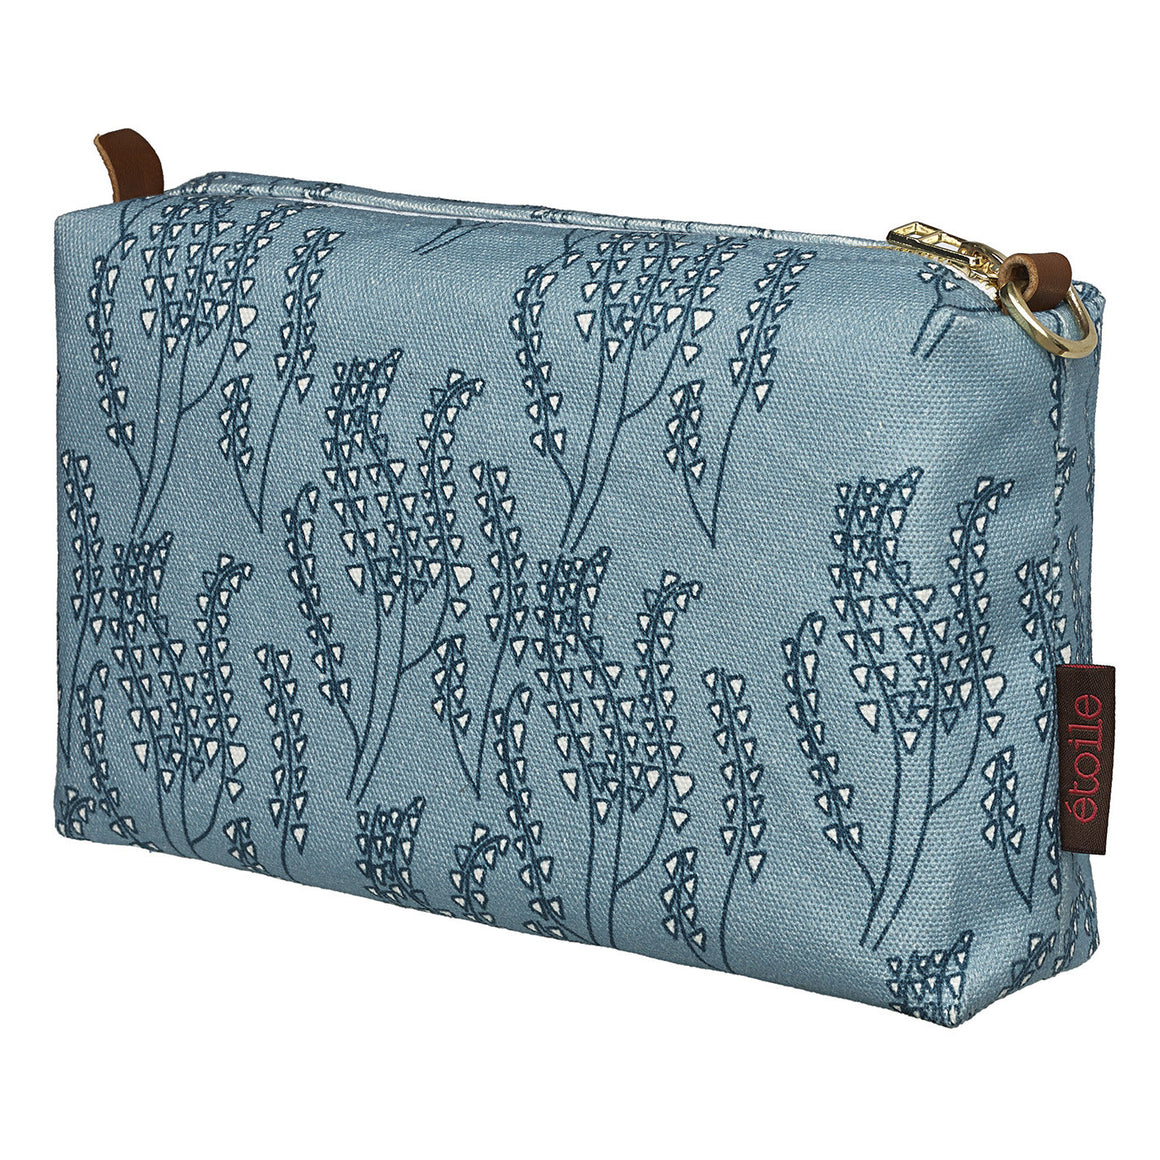 Maricopa Graphic Floral Pattern Canvas Wash Bag in Light Chambray Blue